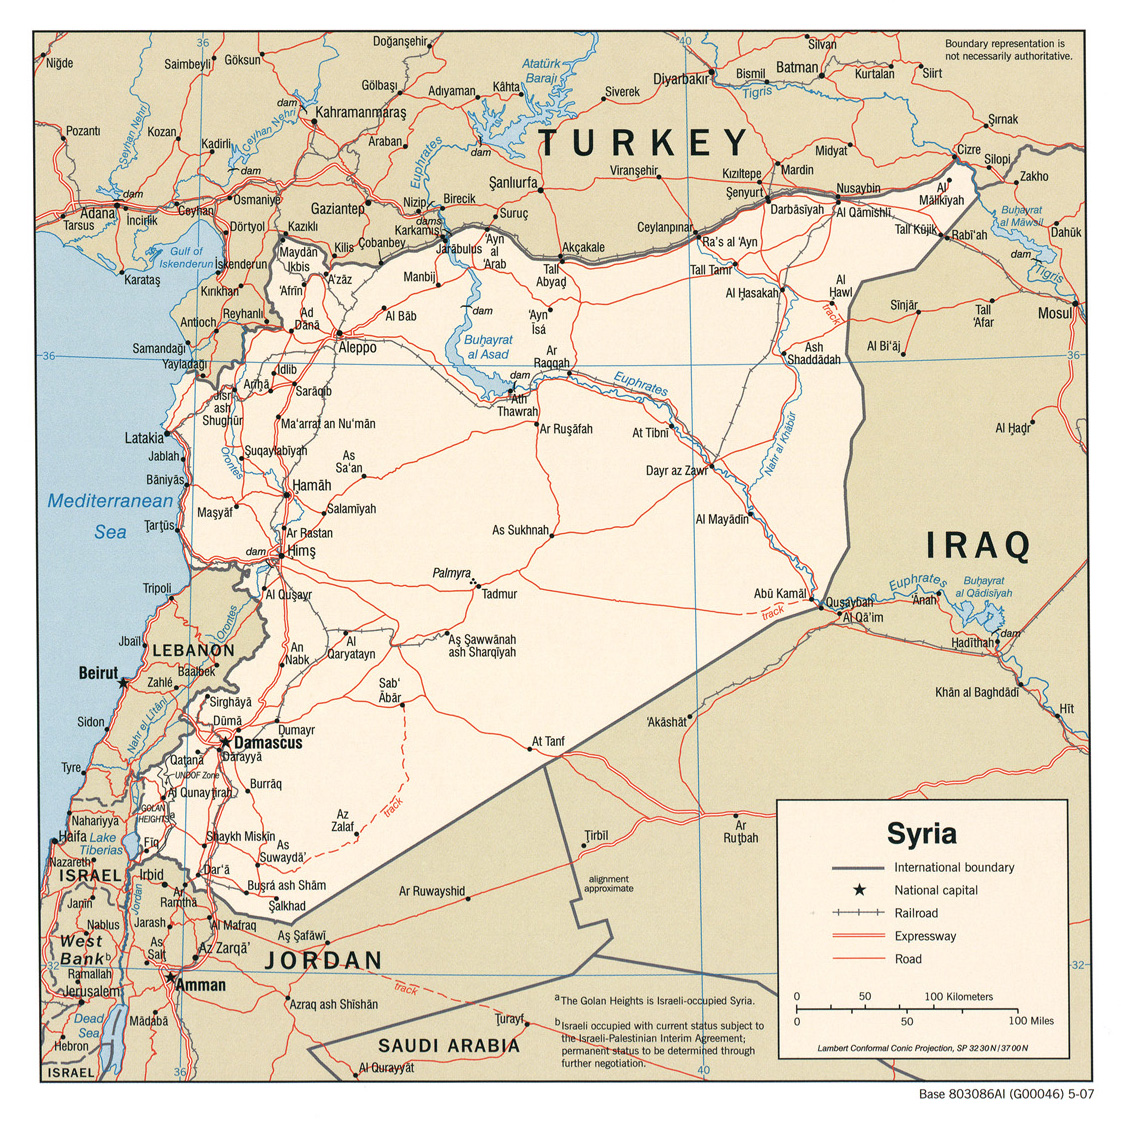 http://www.lib.utexas.edu/maps/middle_east_and_asia/syria_pol_2007.jpg